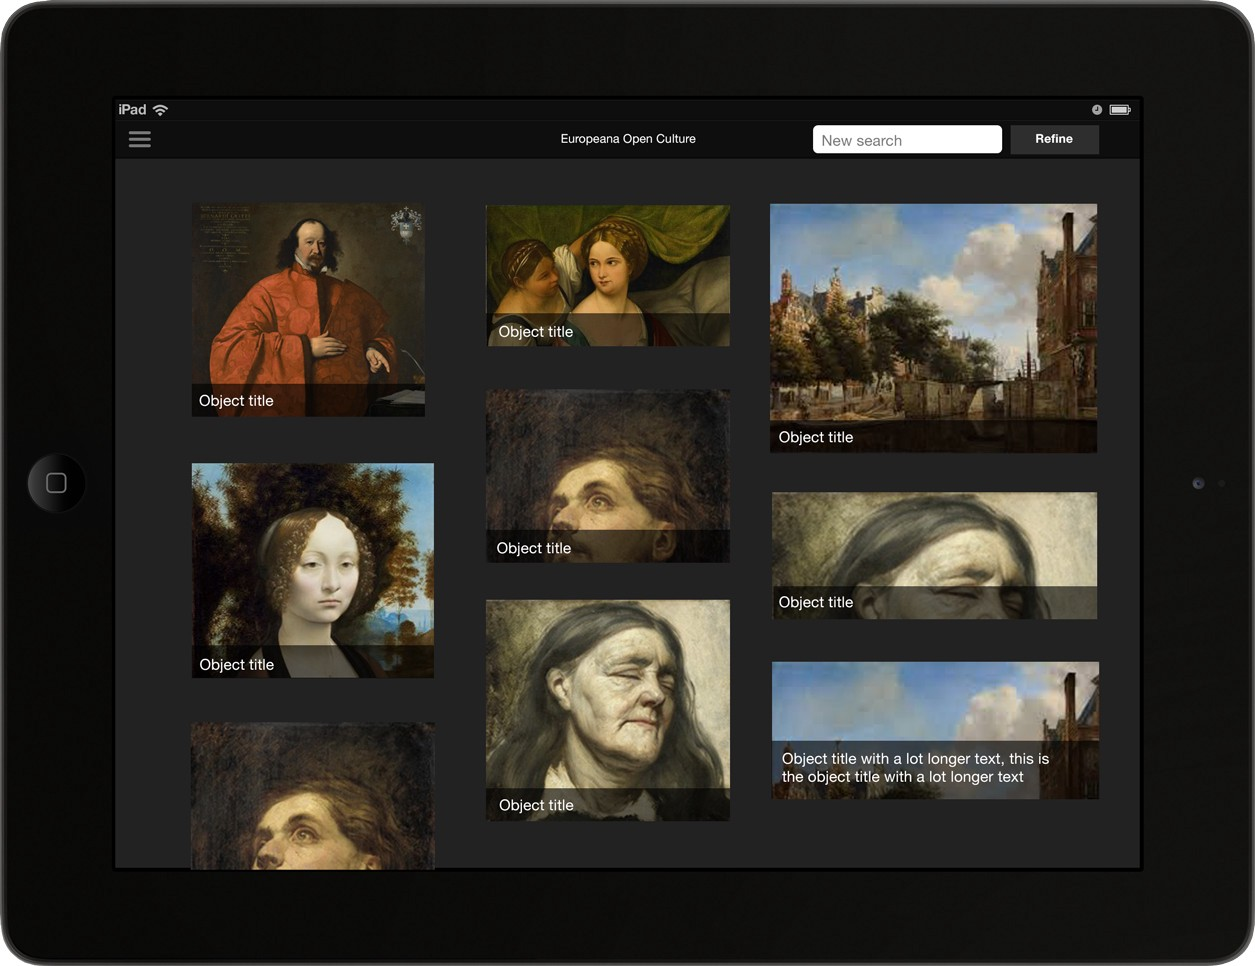 A high fidelity mockup of the search results page, showing a masonry view of images with the paintings title underneath.